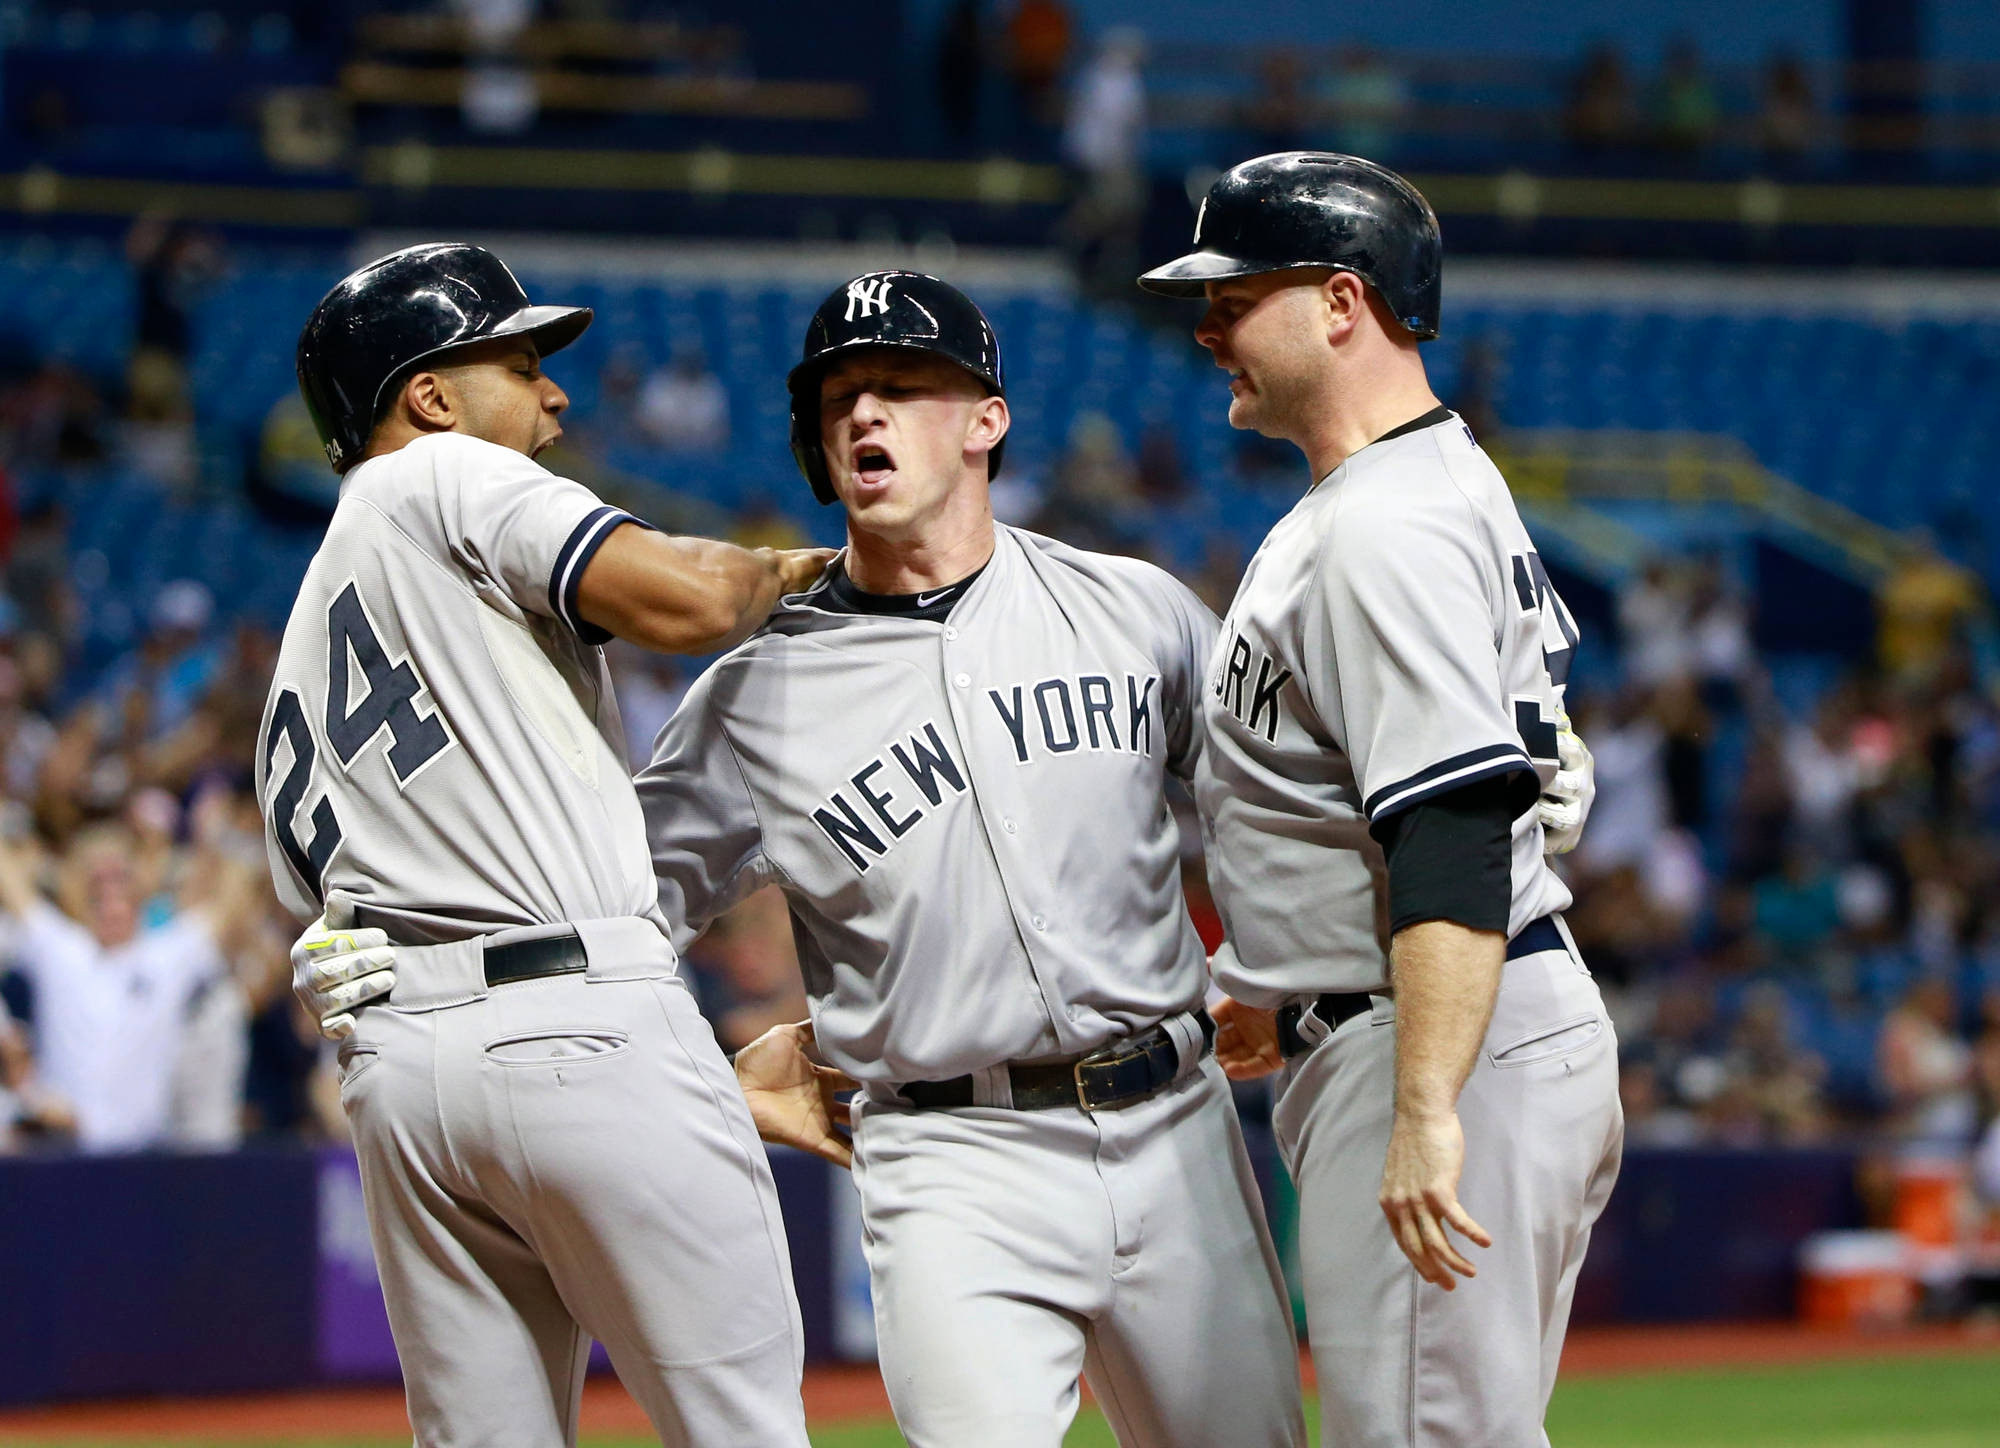 Res: 2000x1448, Yankees Wallpaper Elegant New York Yankees Wallpapers Hd